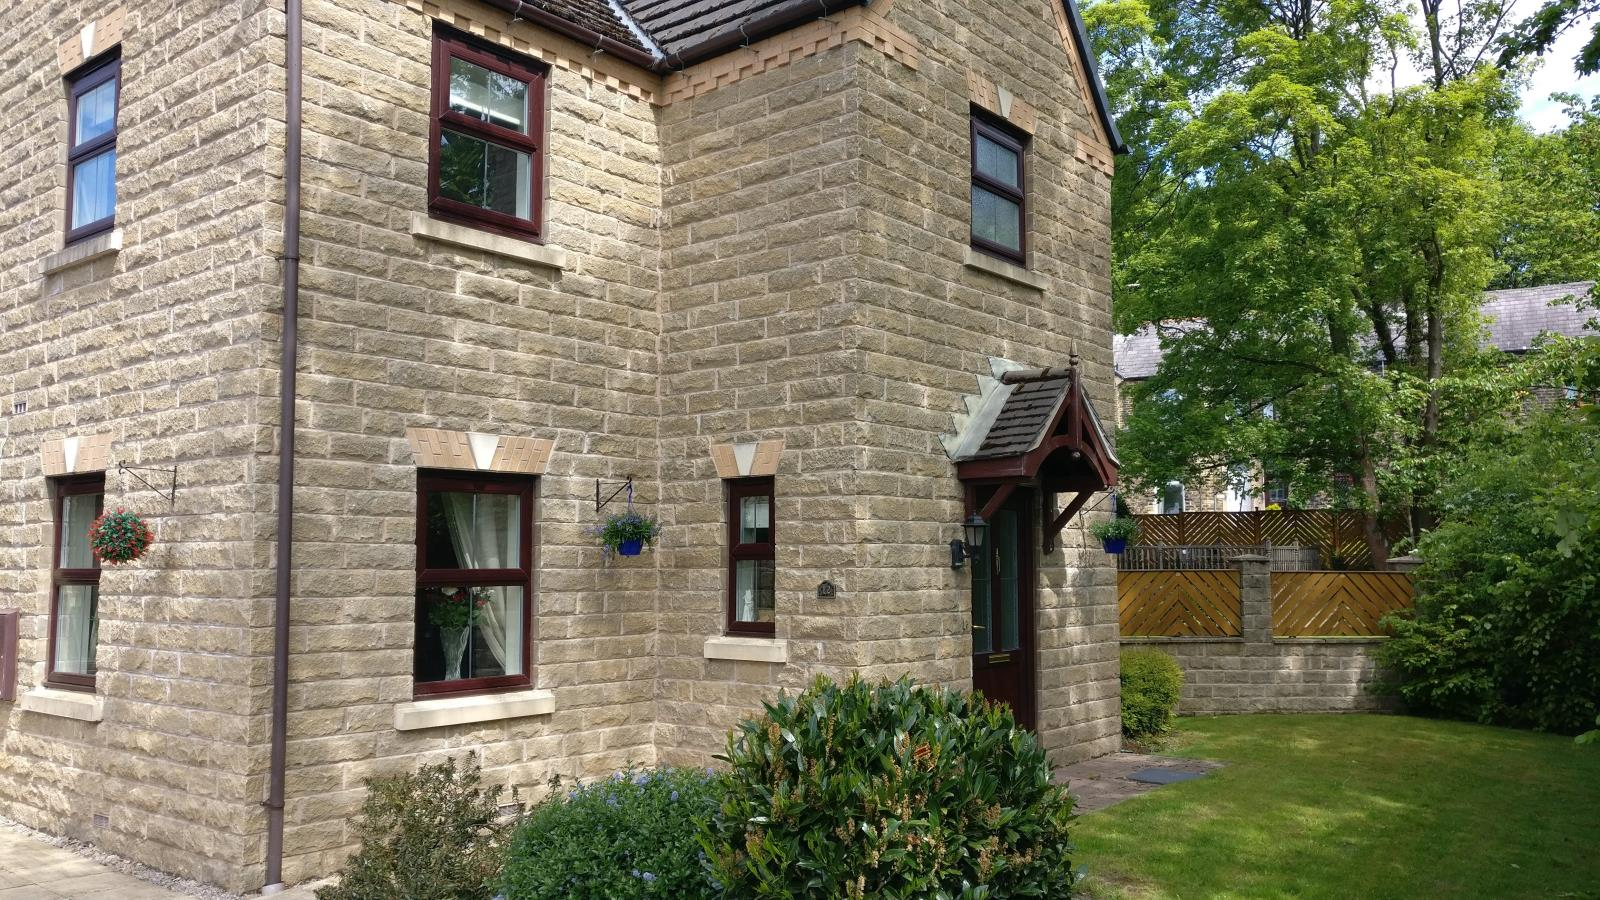 12 Mereside, Waterloo, Huddersfield, HD5 8SX